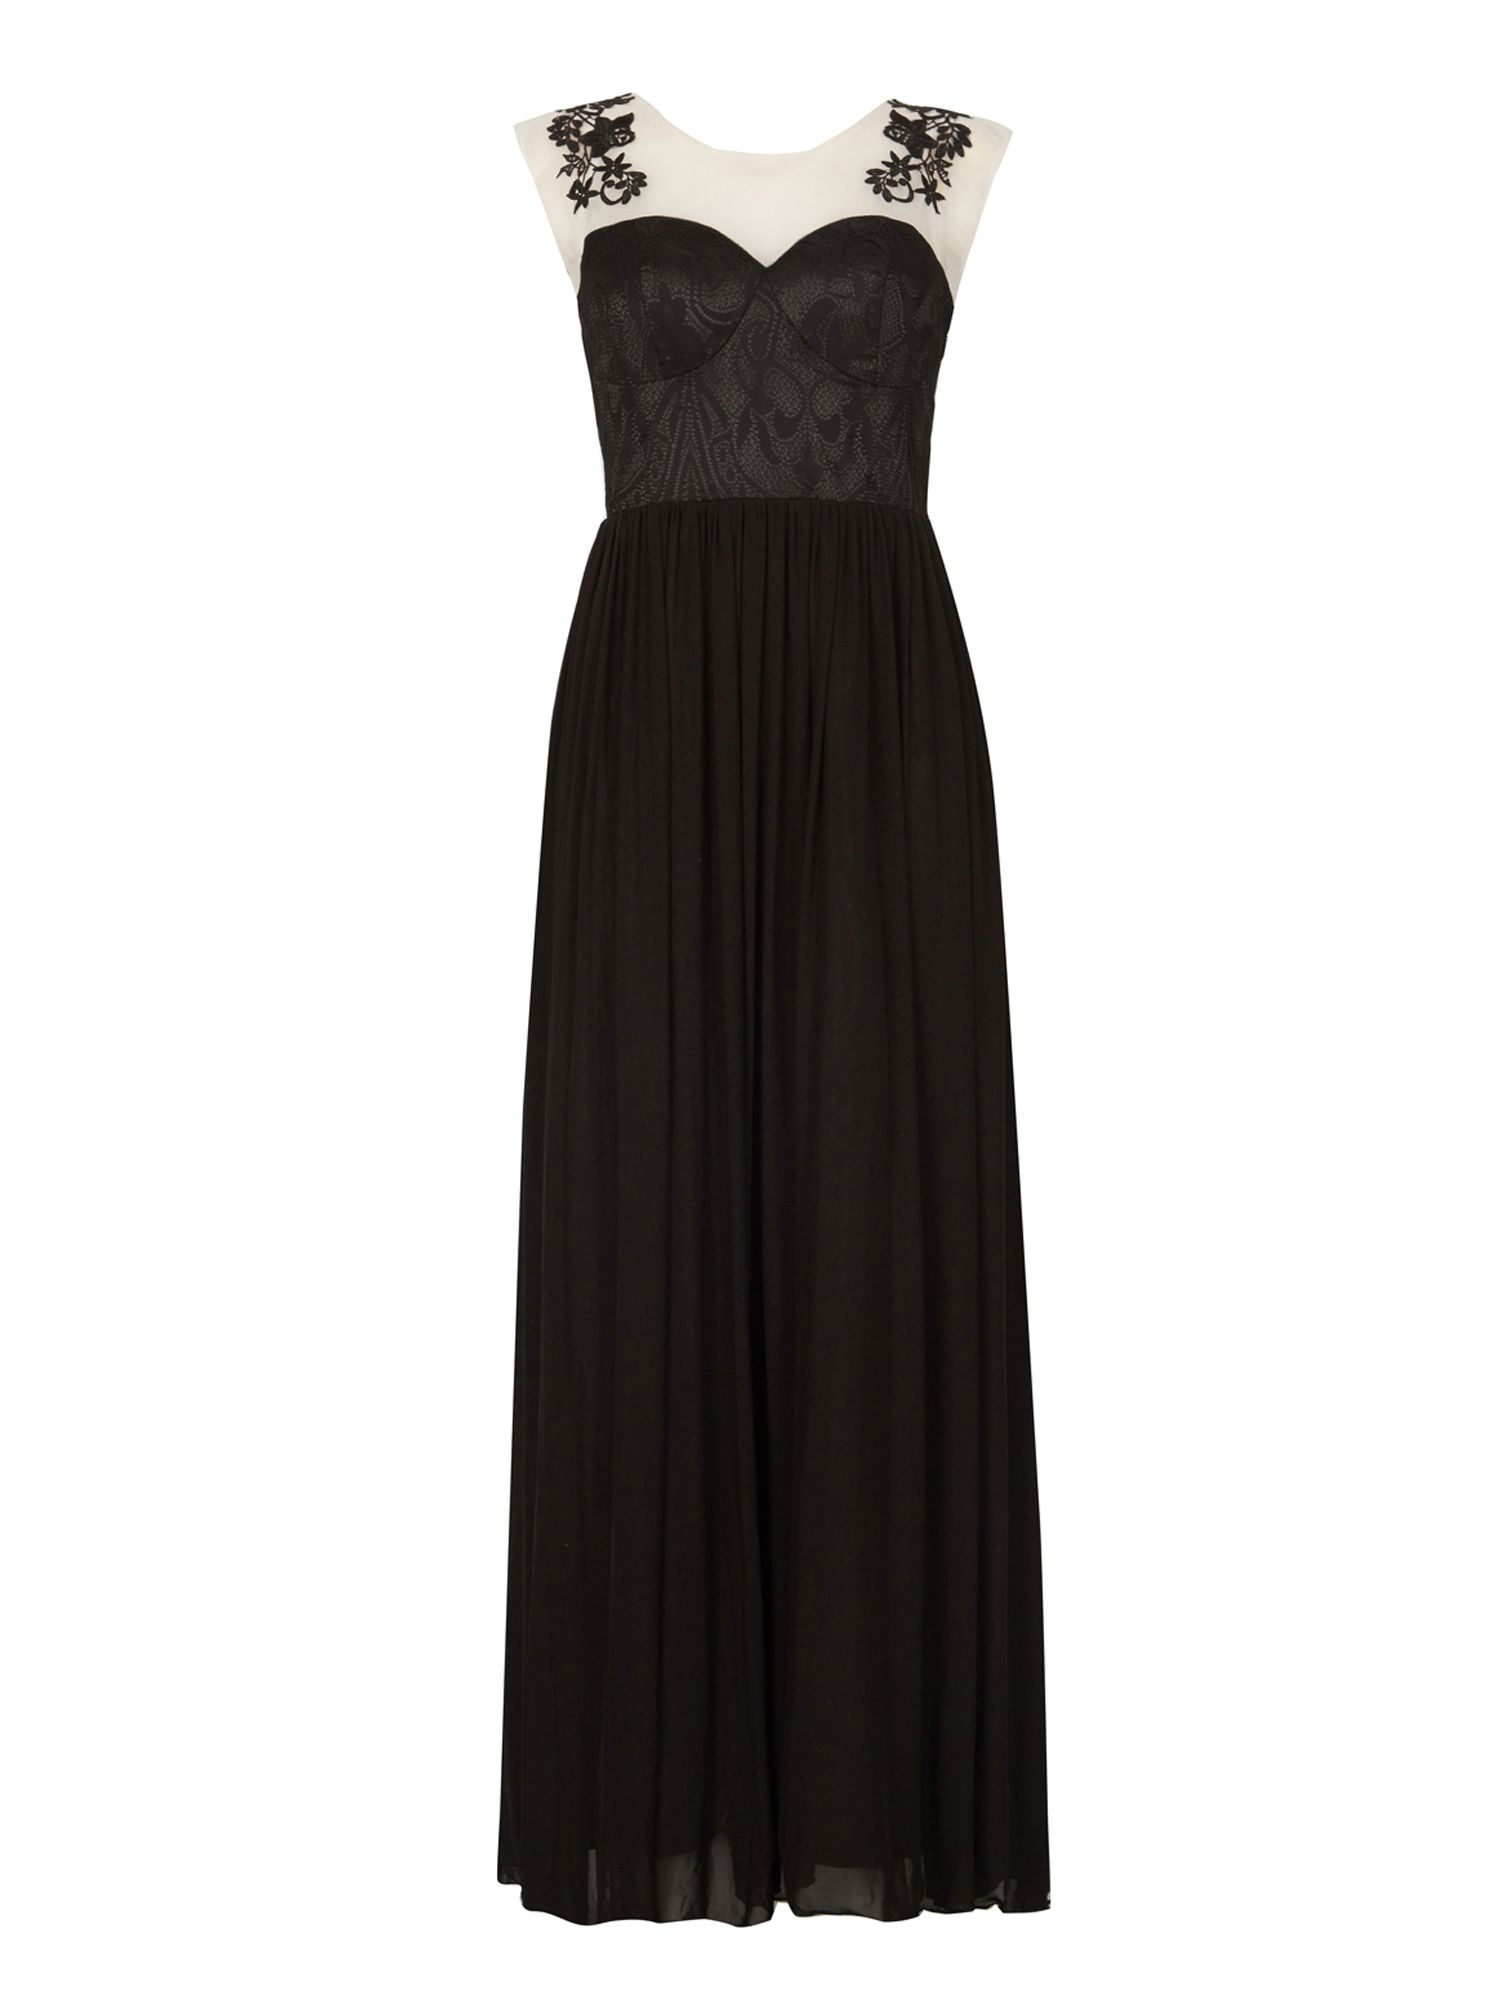 Izabel London Illusion Maxi Dress, Black